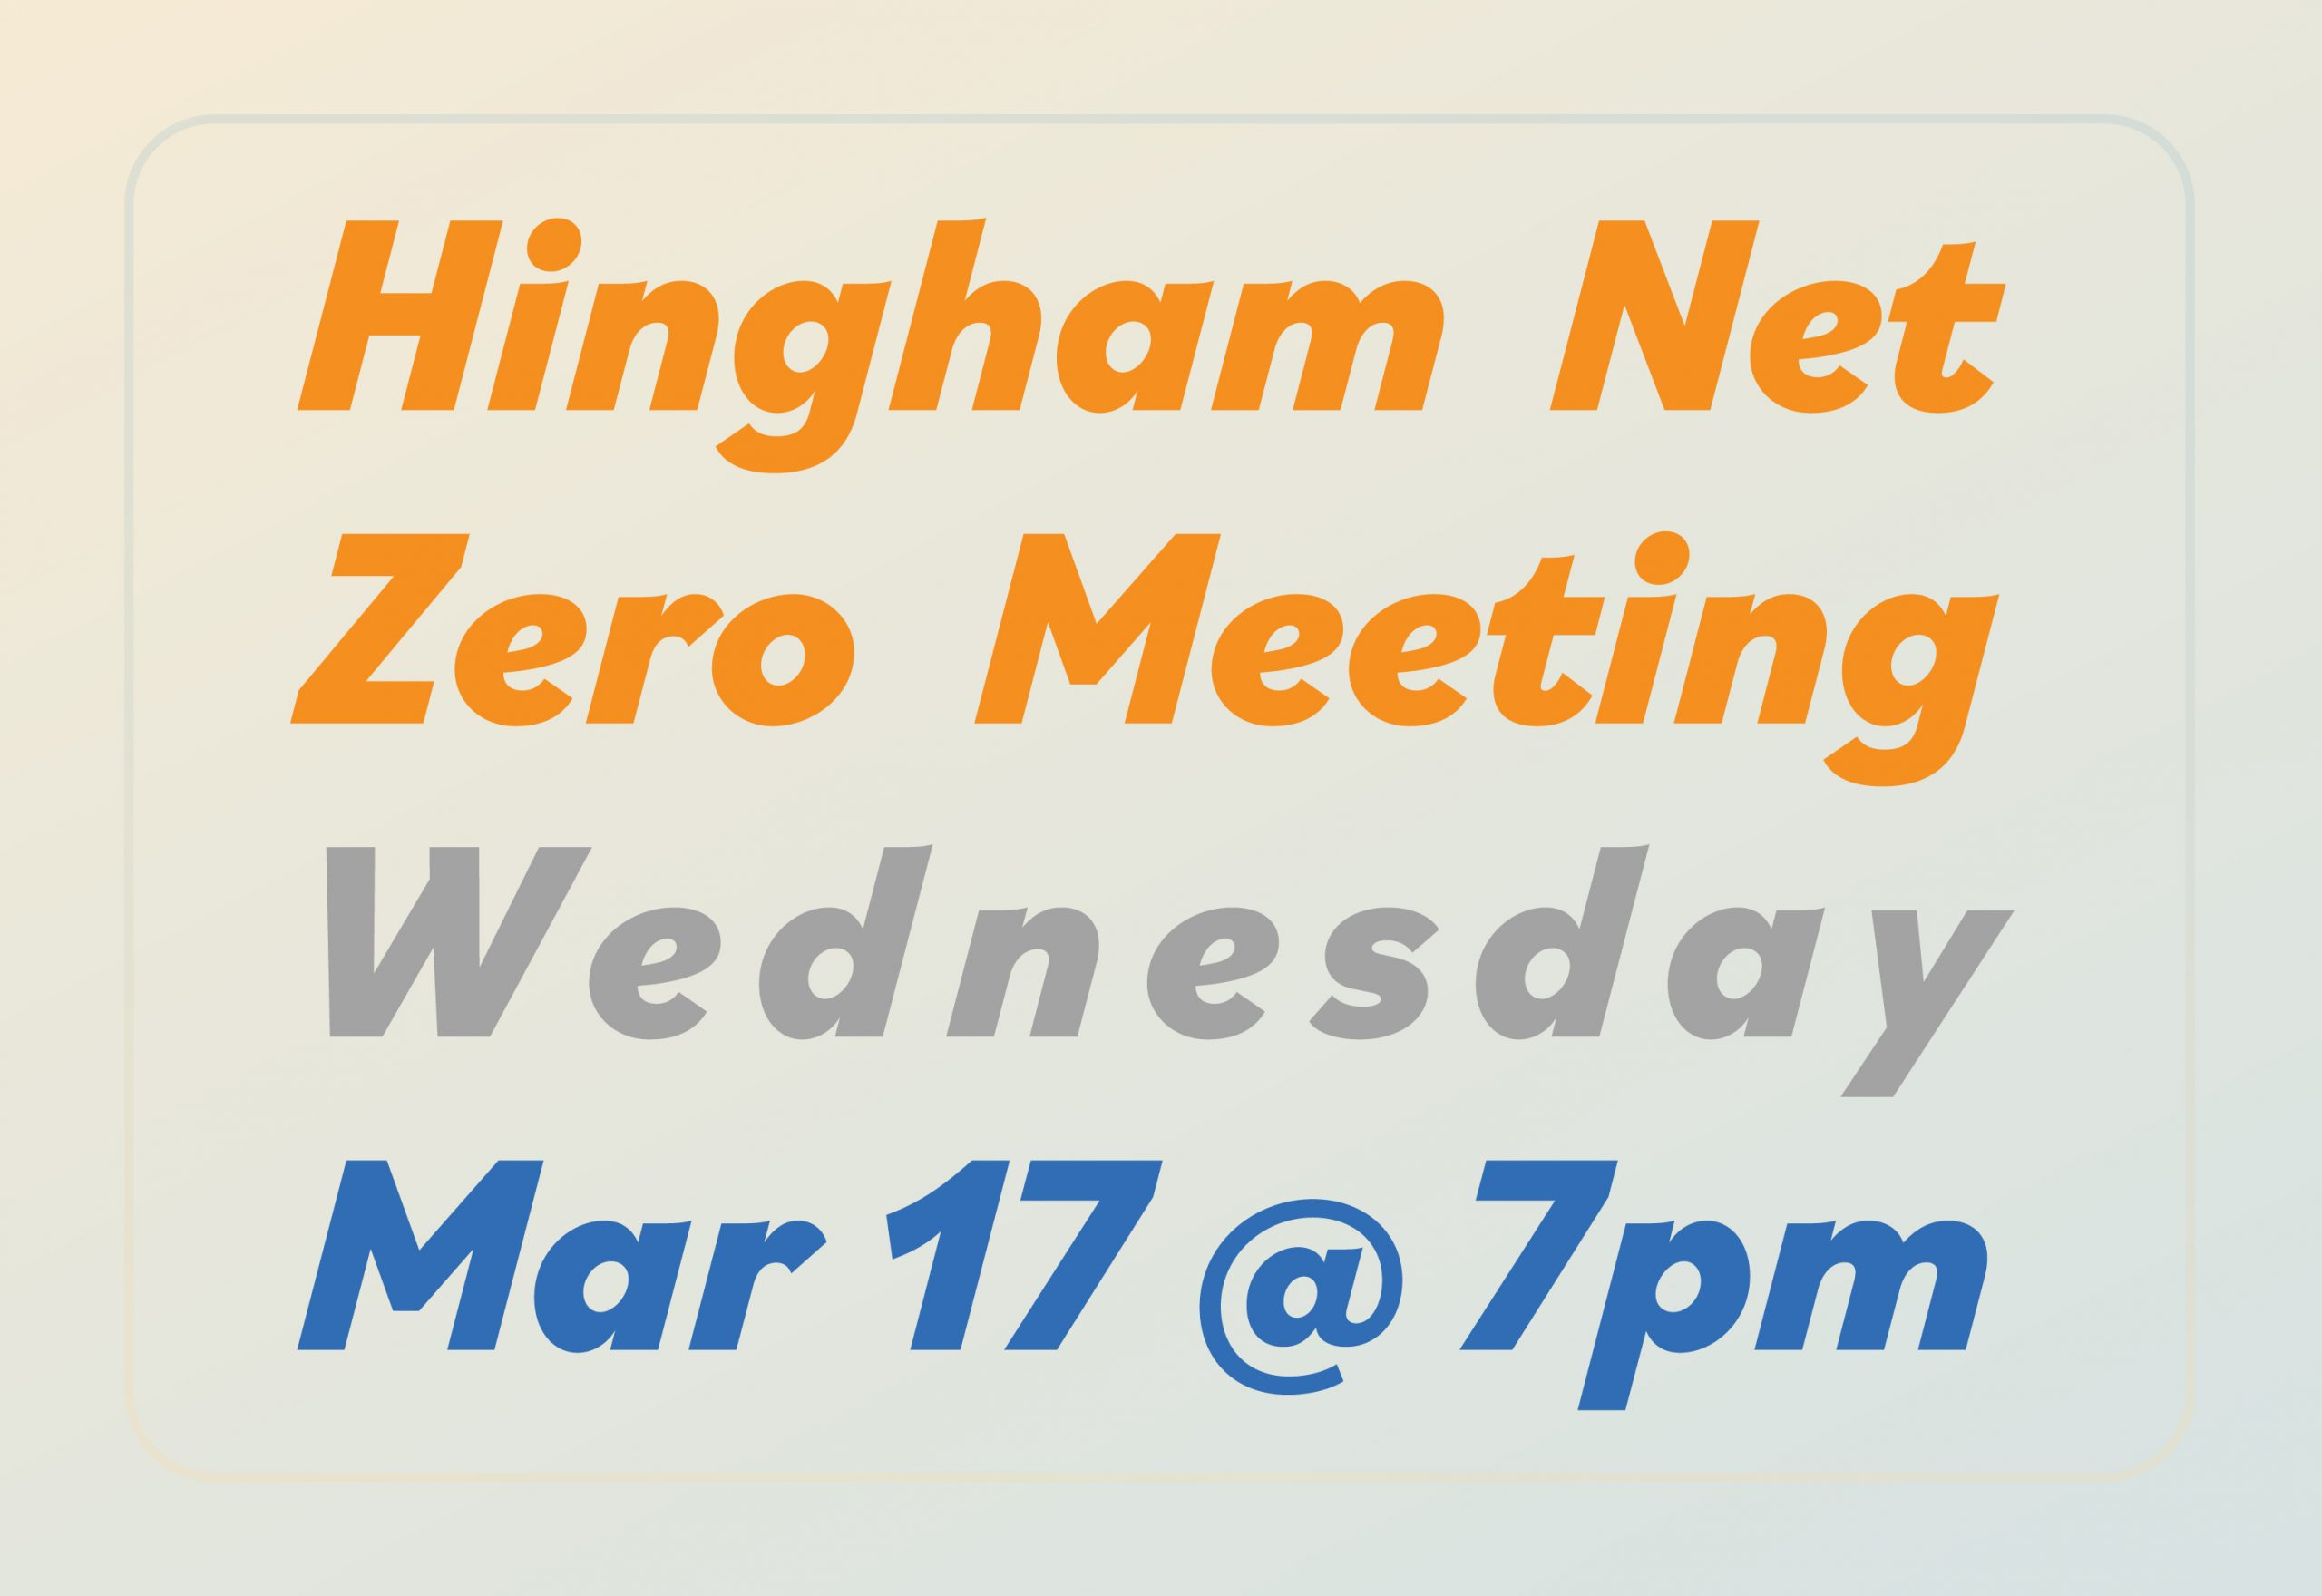 Hingham Net Zero Meeting Wednesday March 17 at 7pm